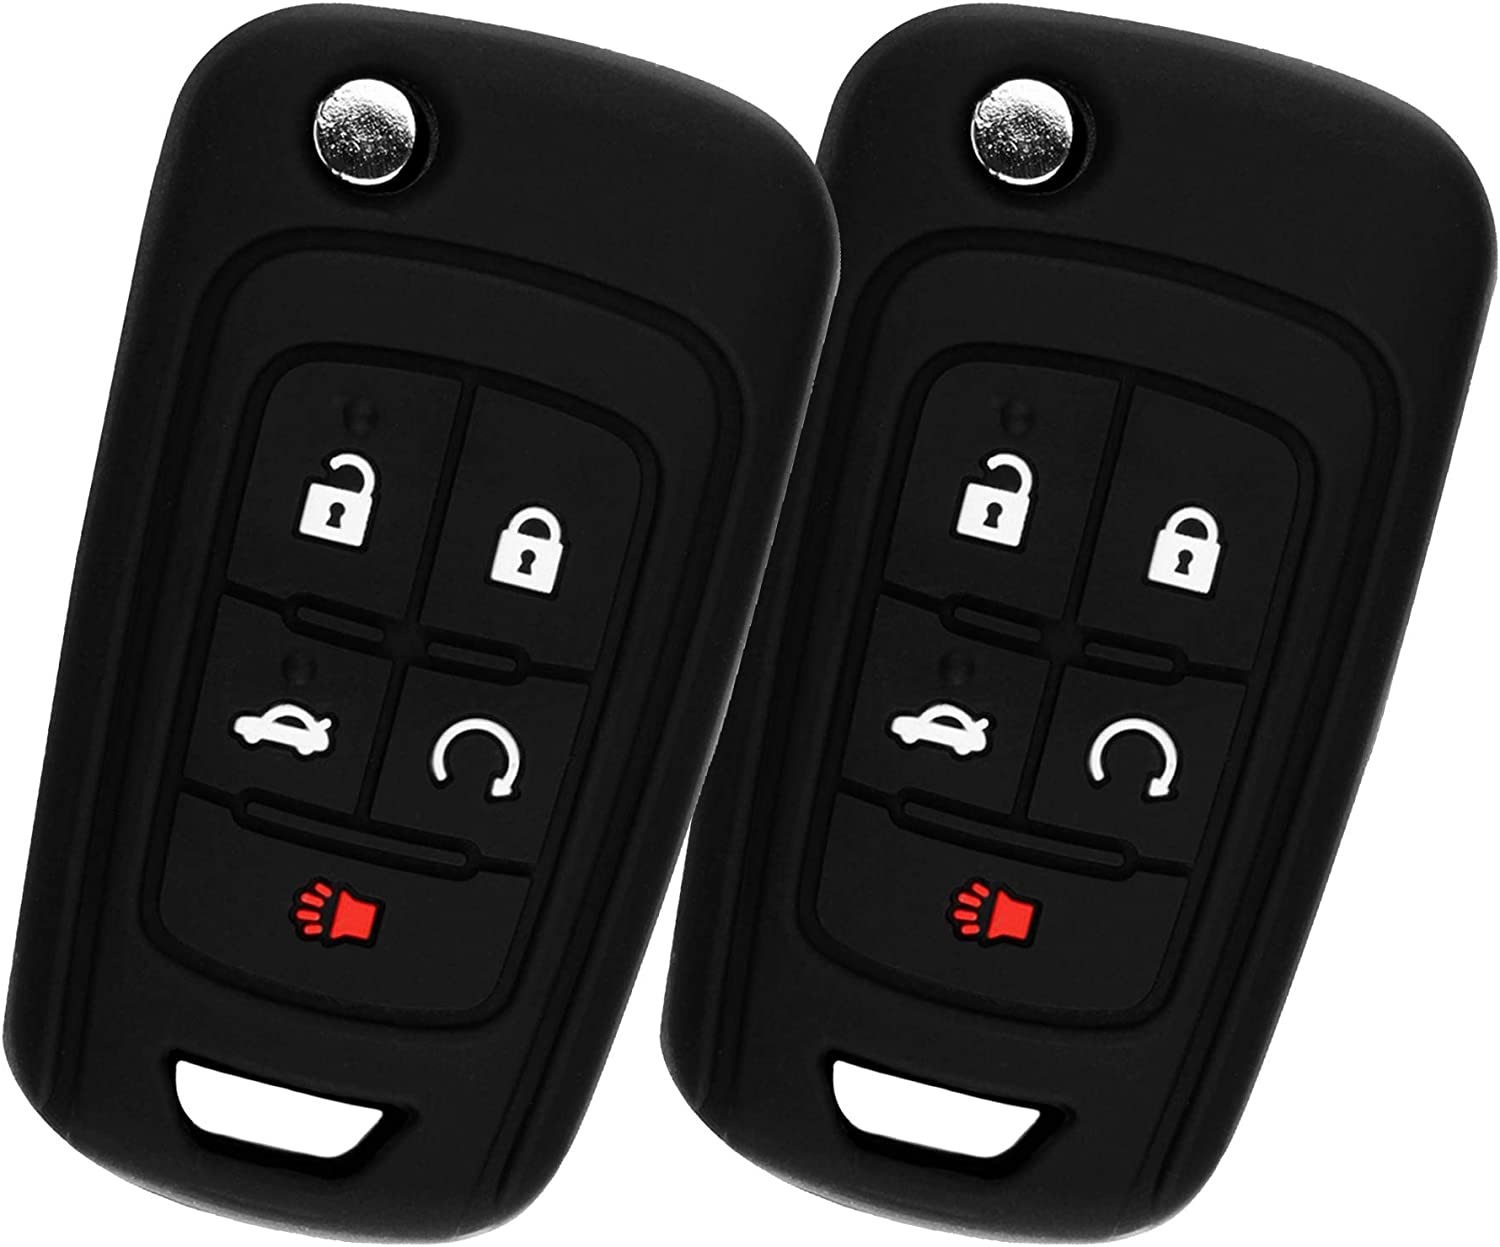 Key Fob Keyless Remote fits 2010-2016 Buick Chevy GMC Vehicles OHT01060512 Protective Cover